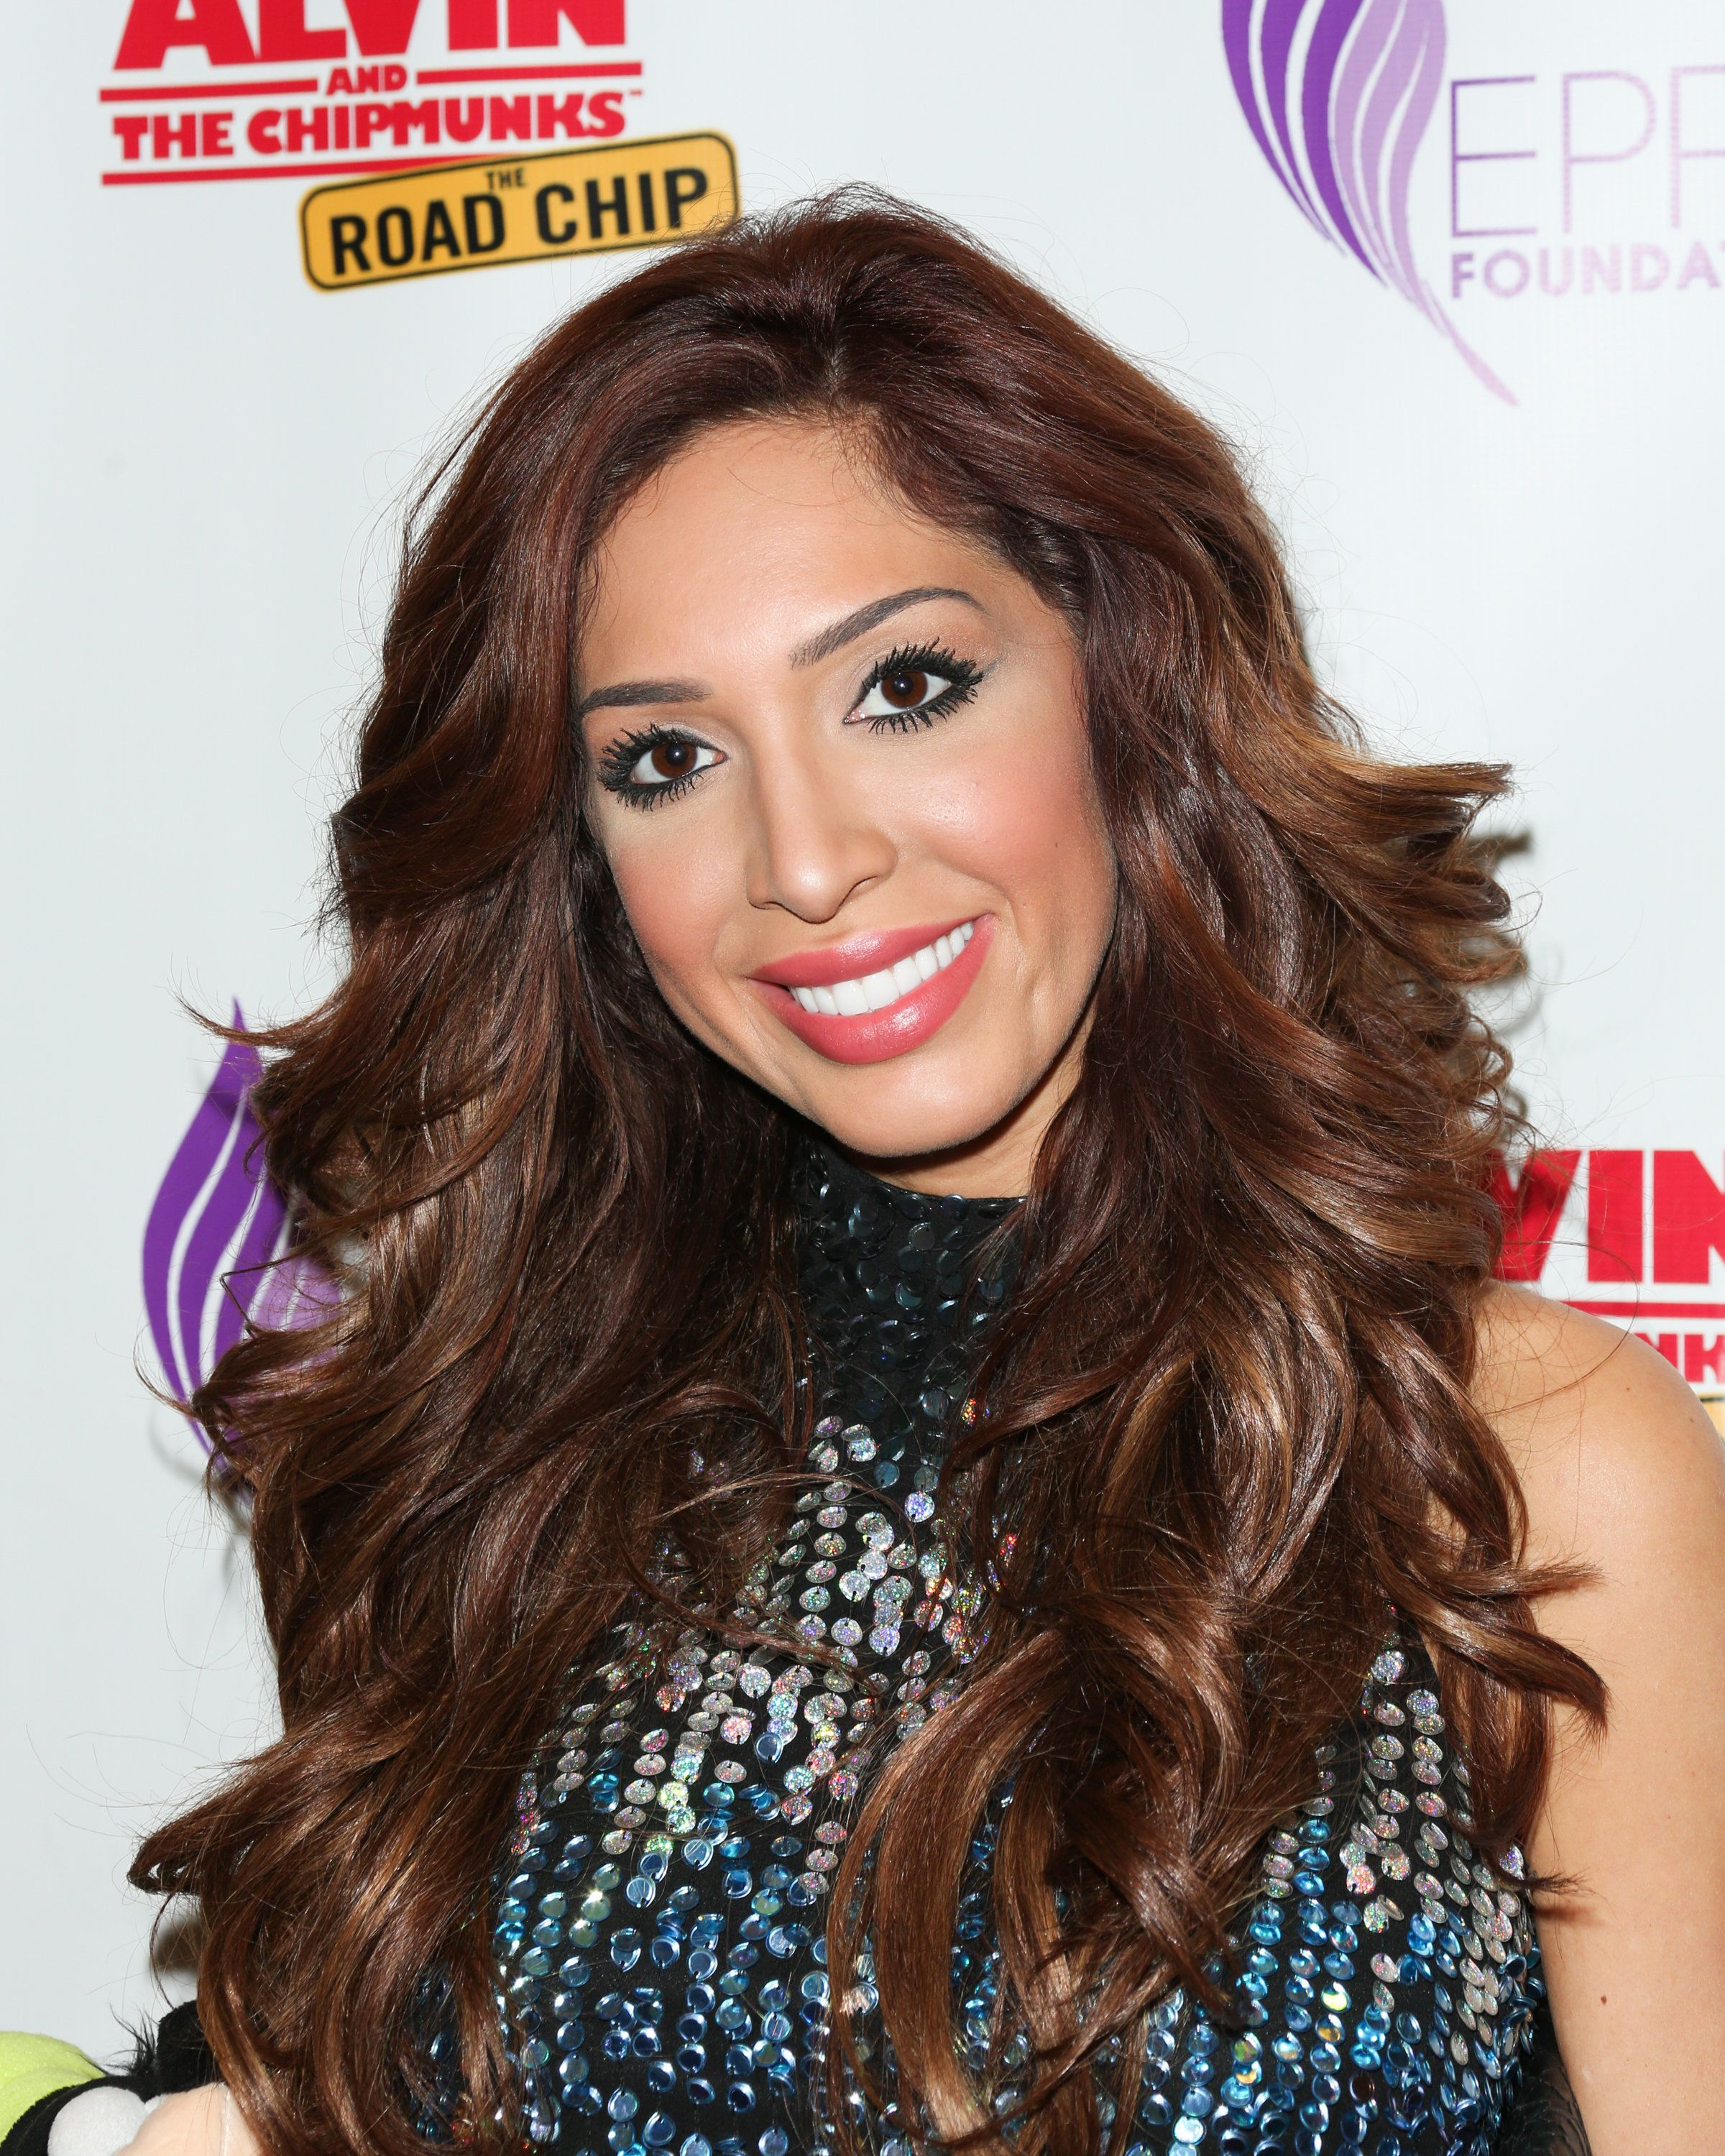 CENTURY CITY, CA - DECEMBER 13:  Reality TV Personality Farrah Abraham attends the celebrity family Sunday funday toy drive and screening of 'Alvin And The Chipmunks: The Road Chip' at AMC Century City 15 theater on December 13, 2015 in Century City, California.  (Photo by Paul Archuleta/Getty Images)